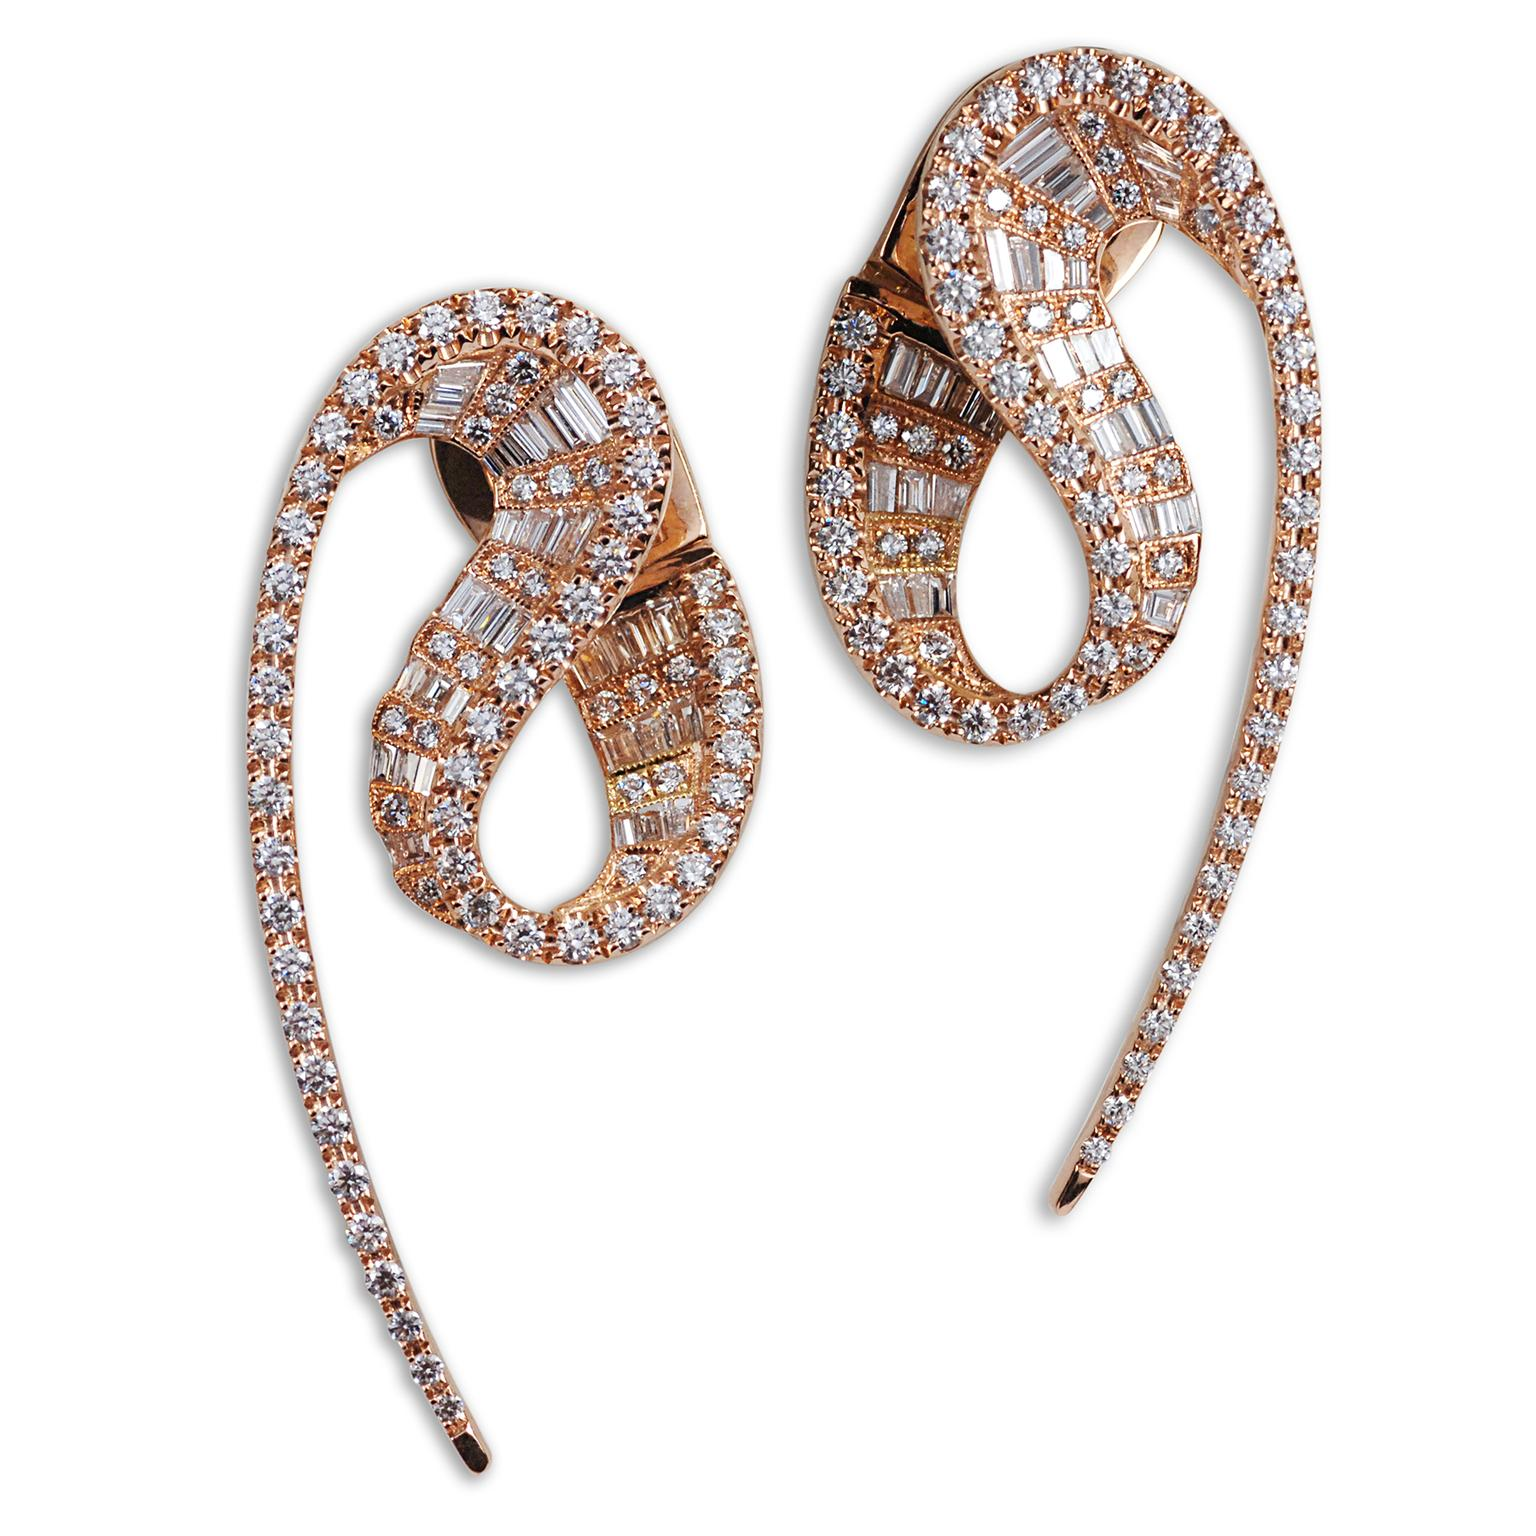 Kavant & Sharart Wave earrings in rose gold and diamonds